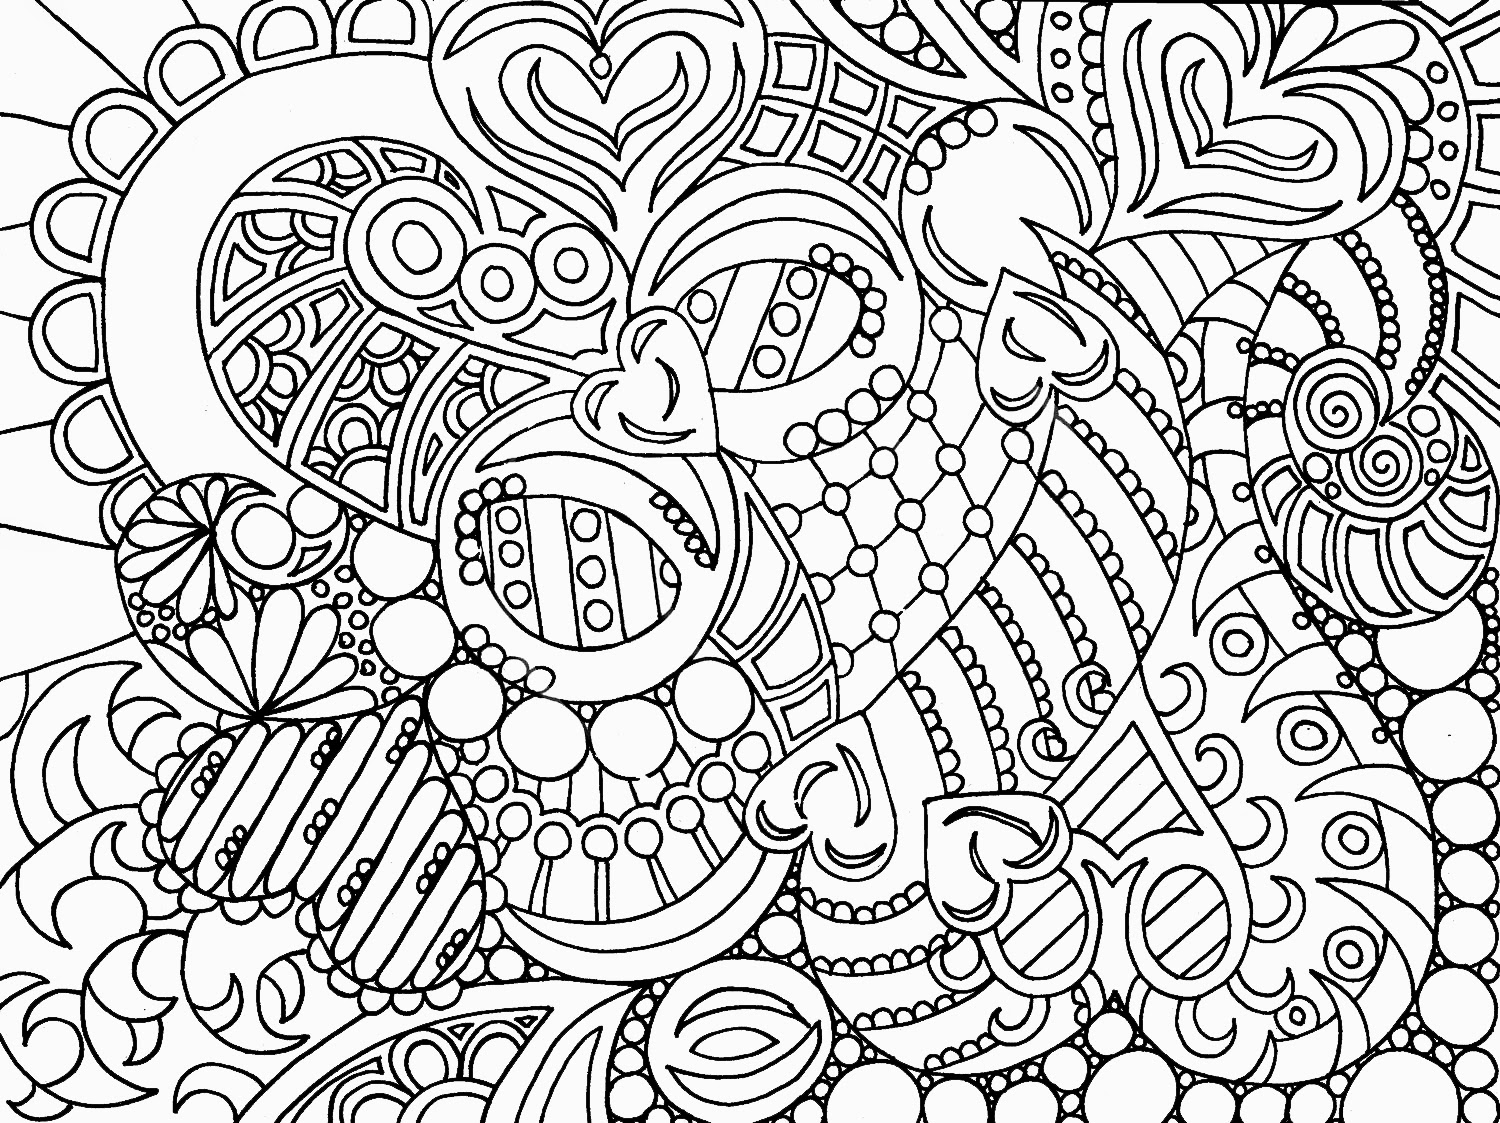 Healing mandala coloring pages - Color Art Therapy Some Pages Are Intimidating To Color